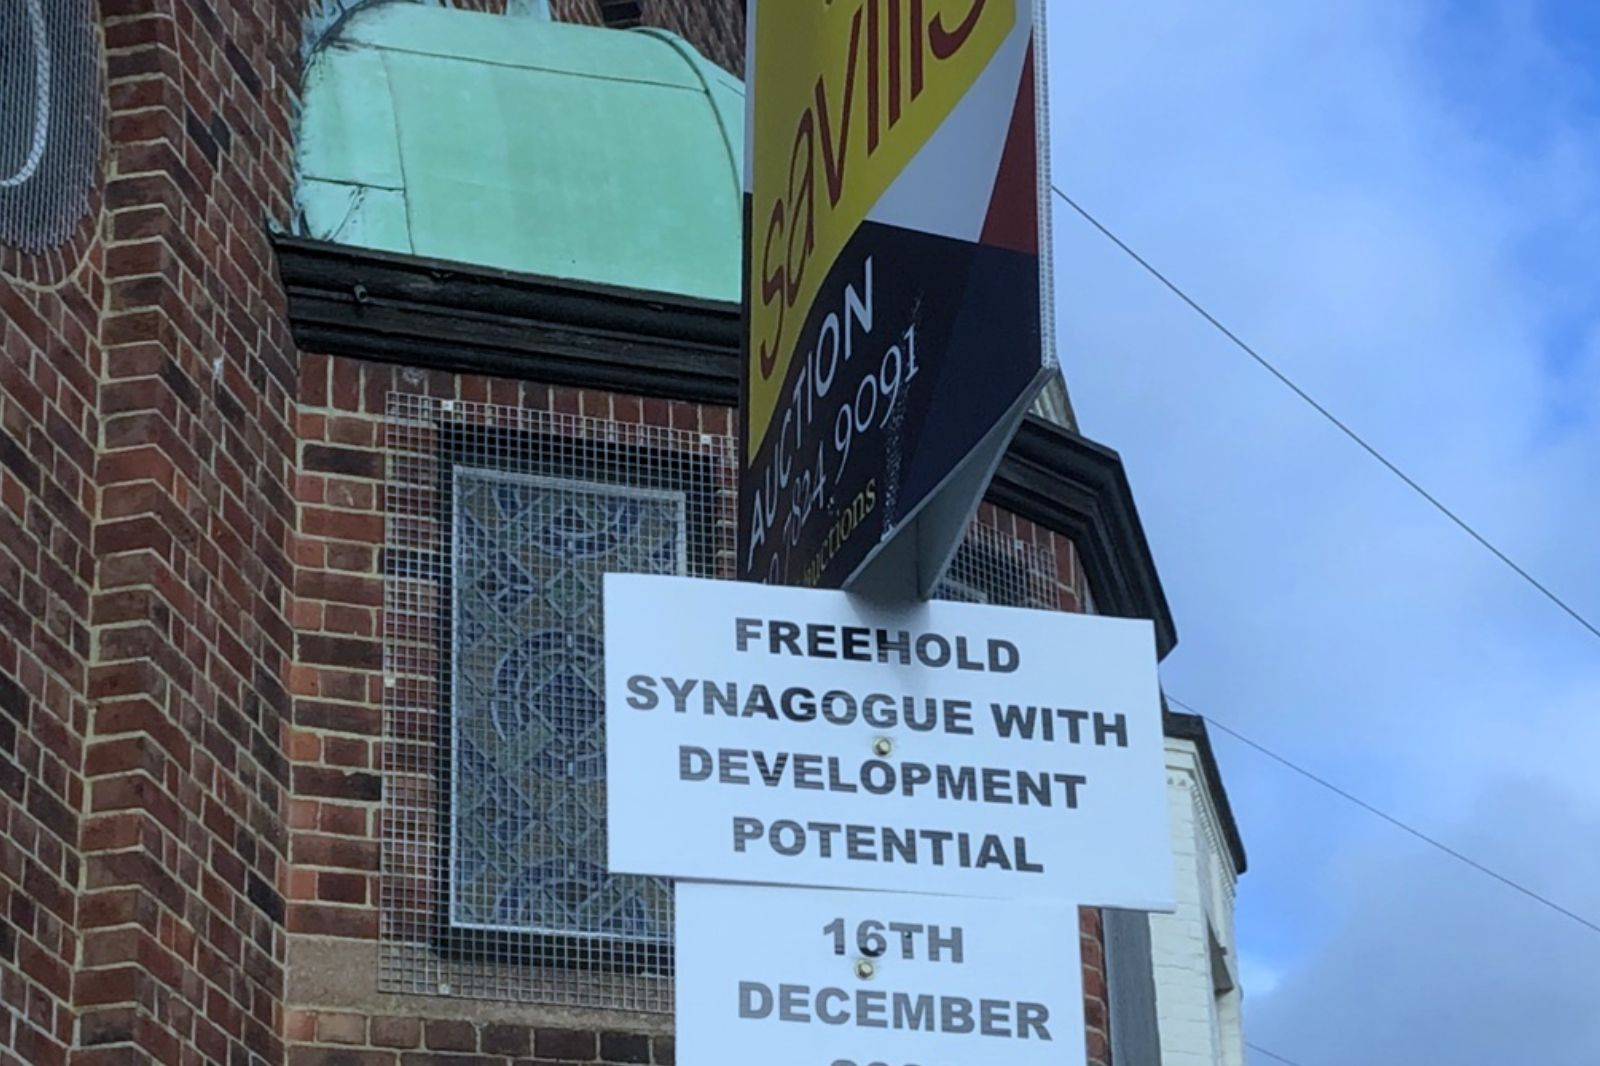 Margate community comes together to try and buy back historic synagogue